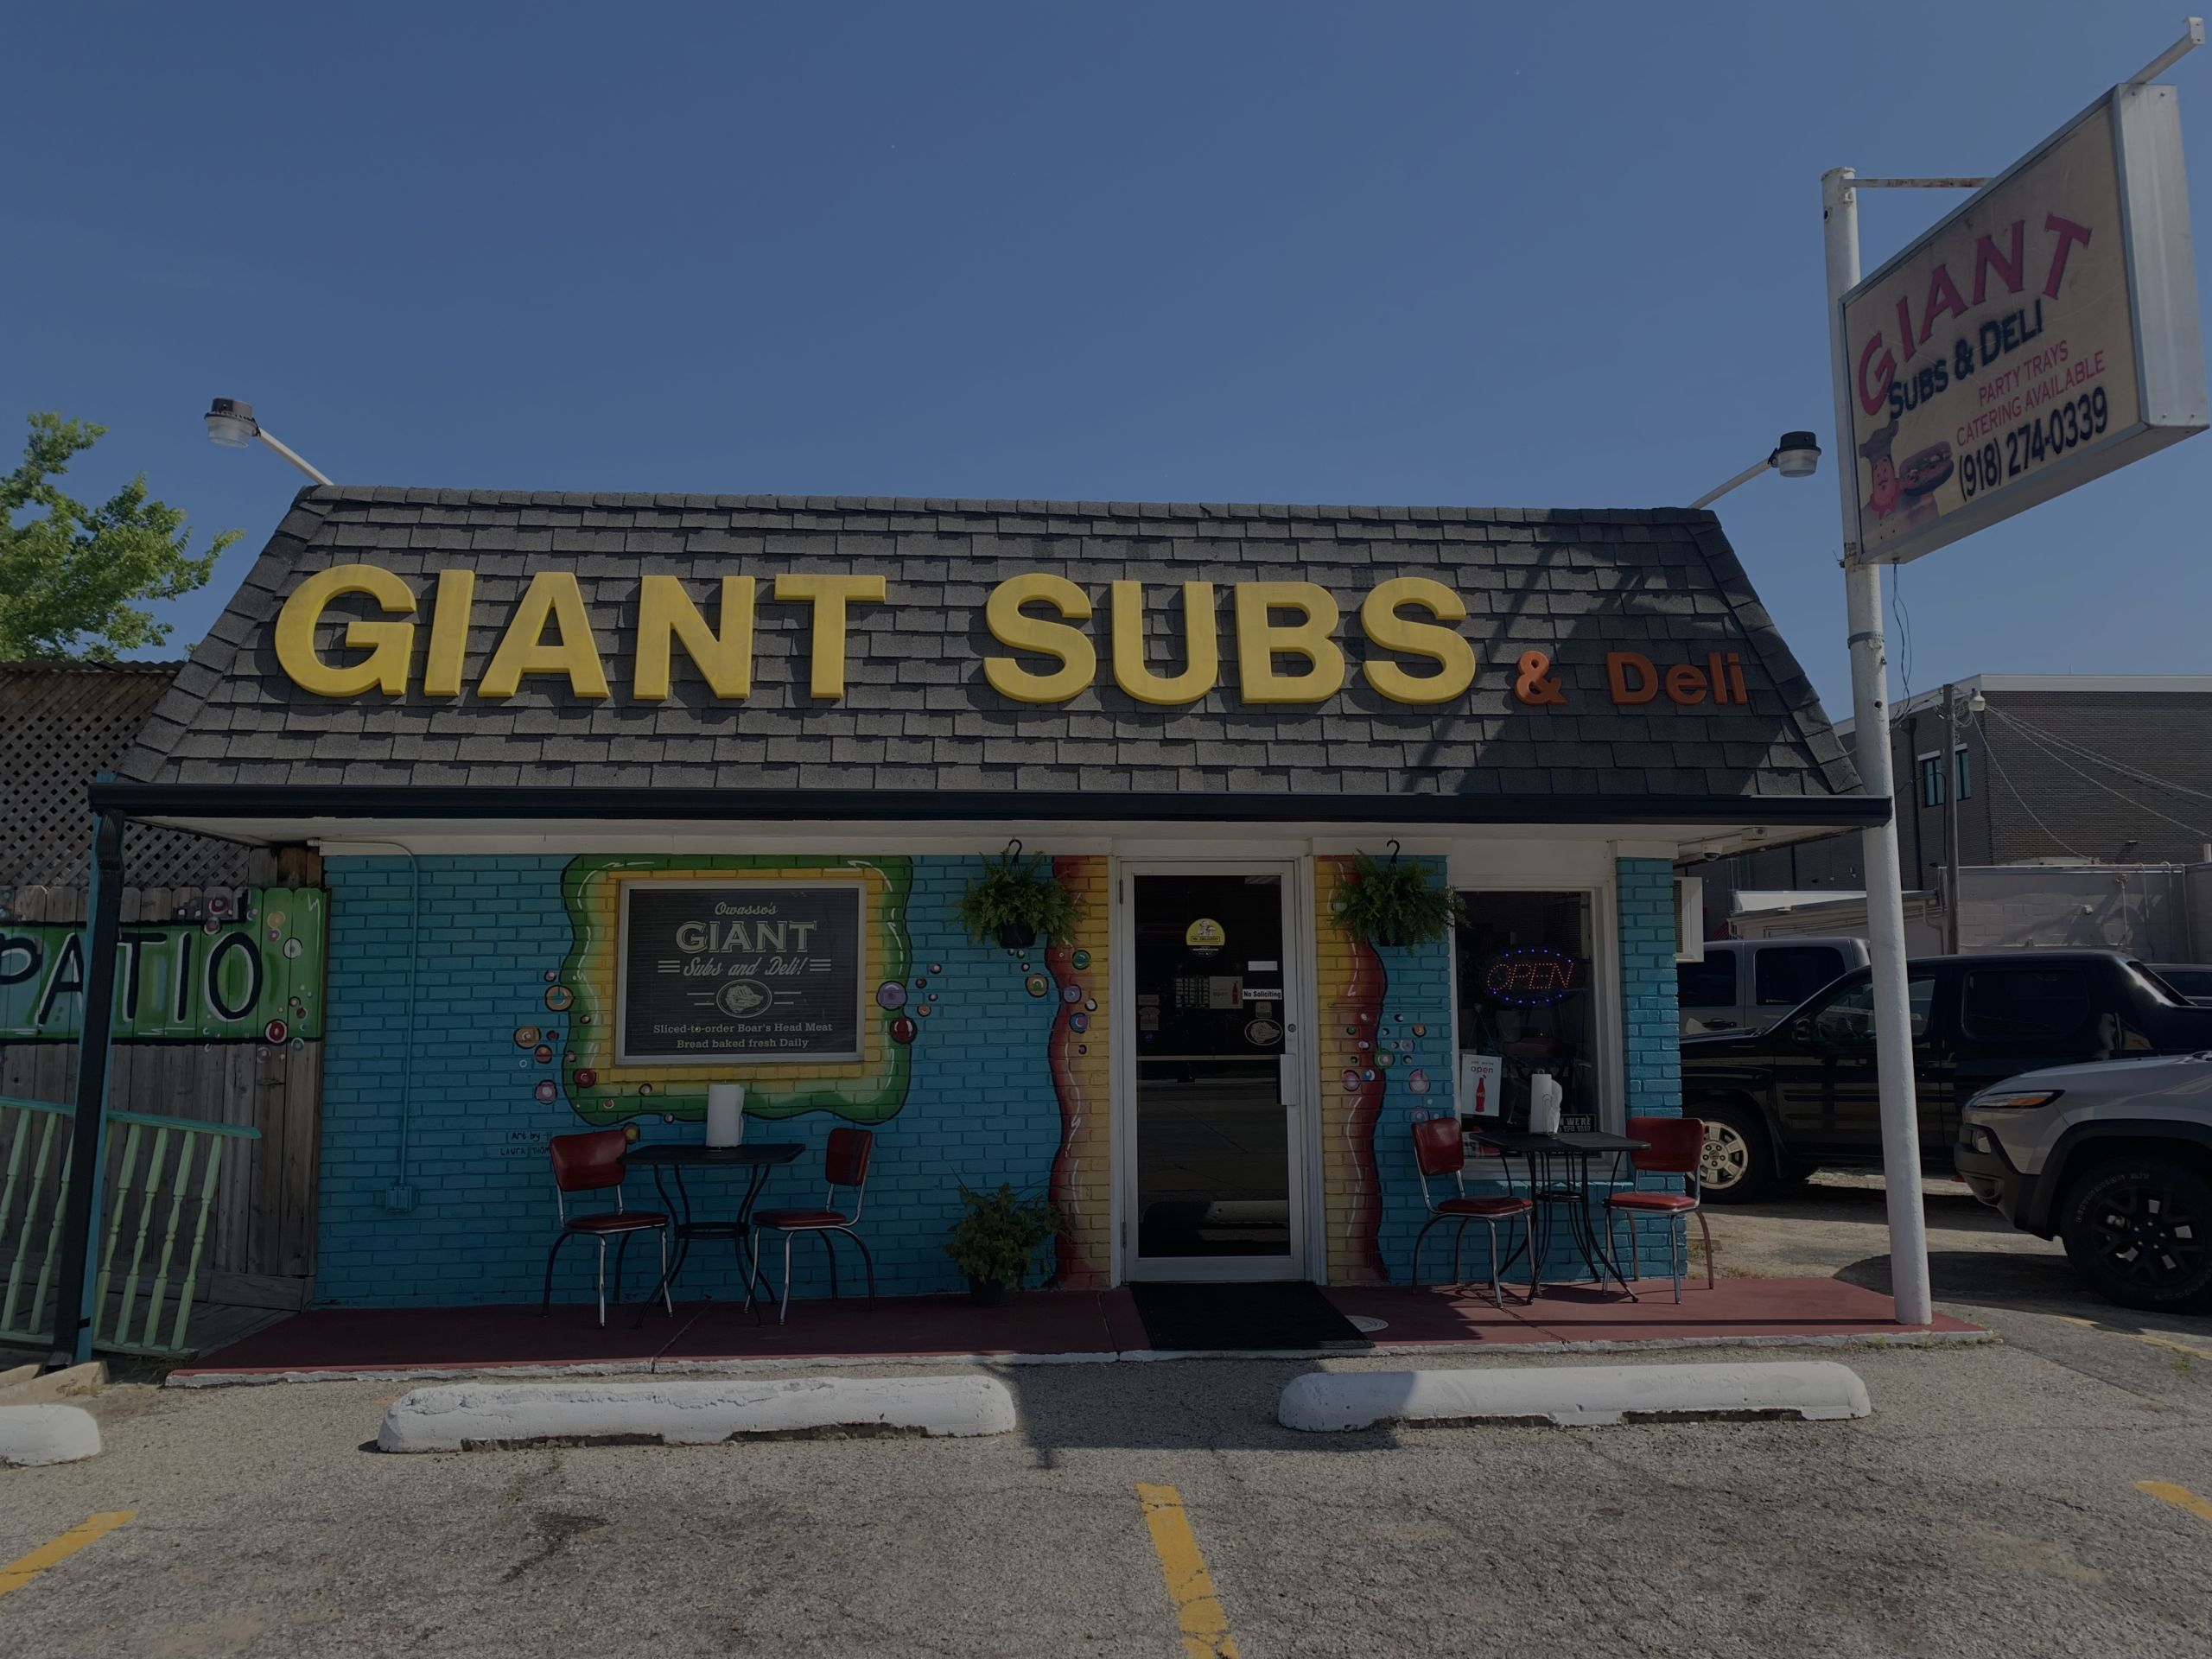 Giant Subs & Deli – Best sandwiches in Owasso!